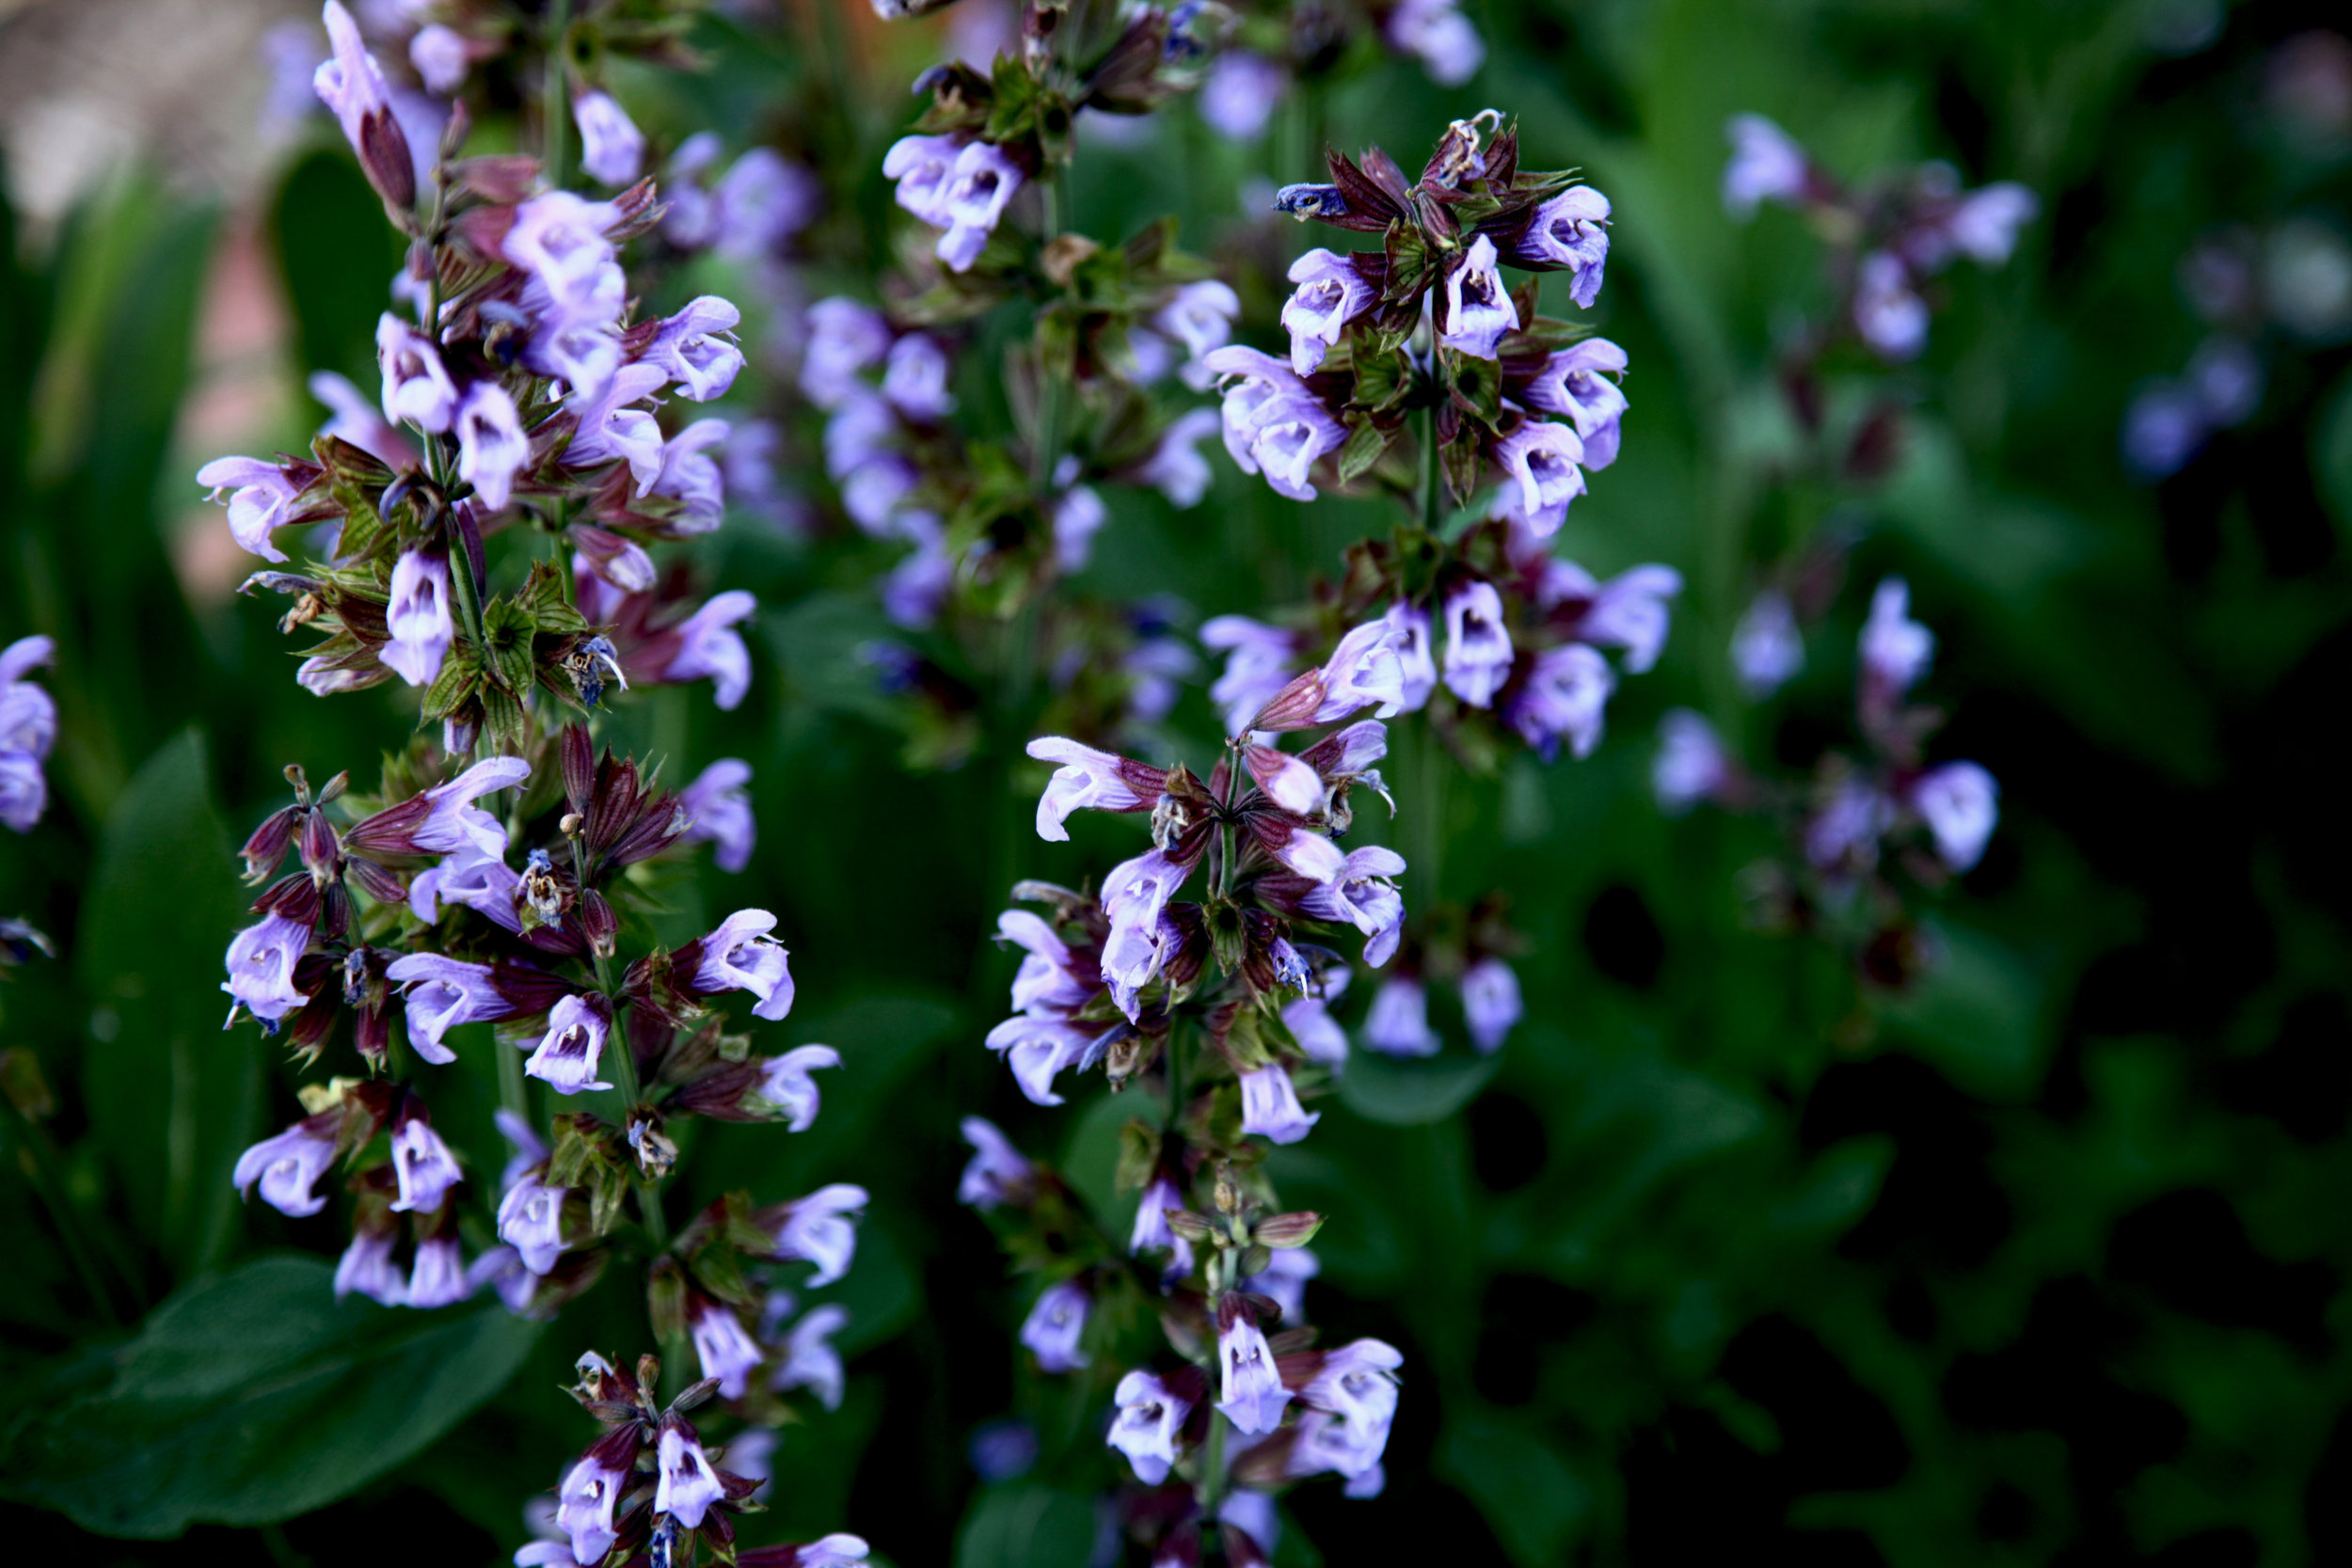 Common sage flowers.